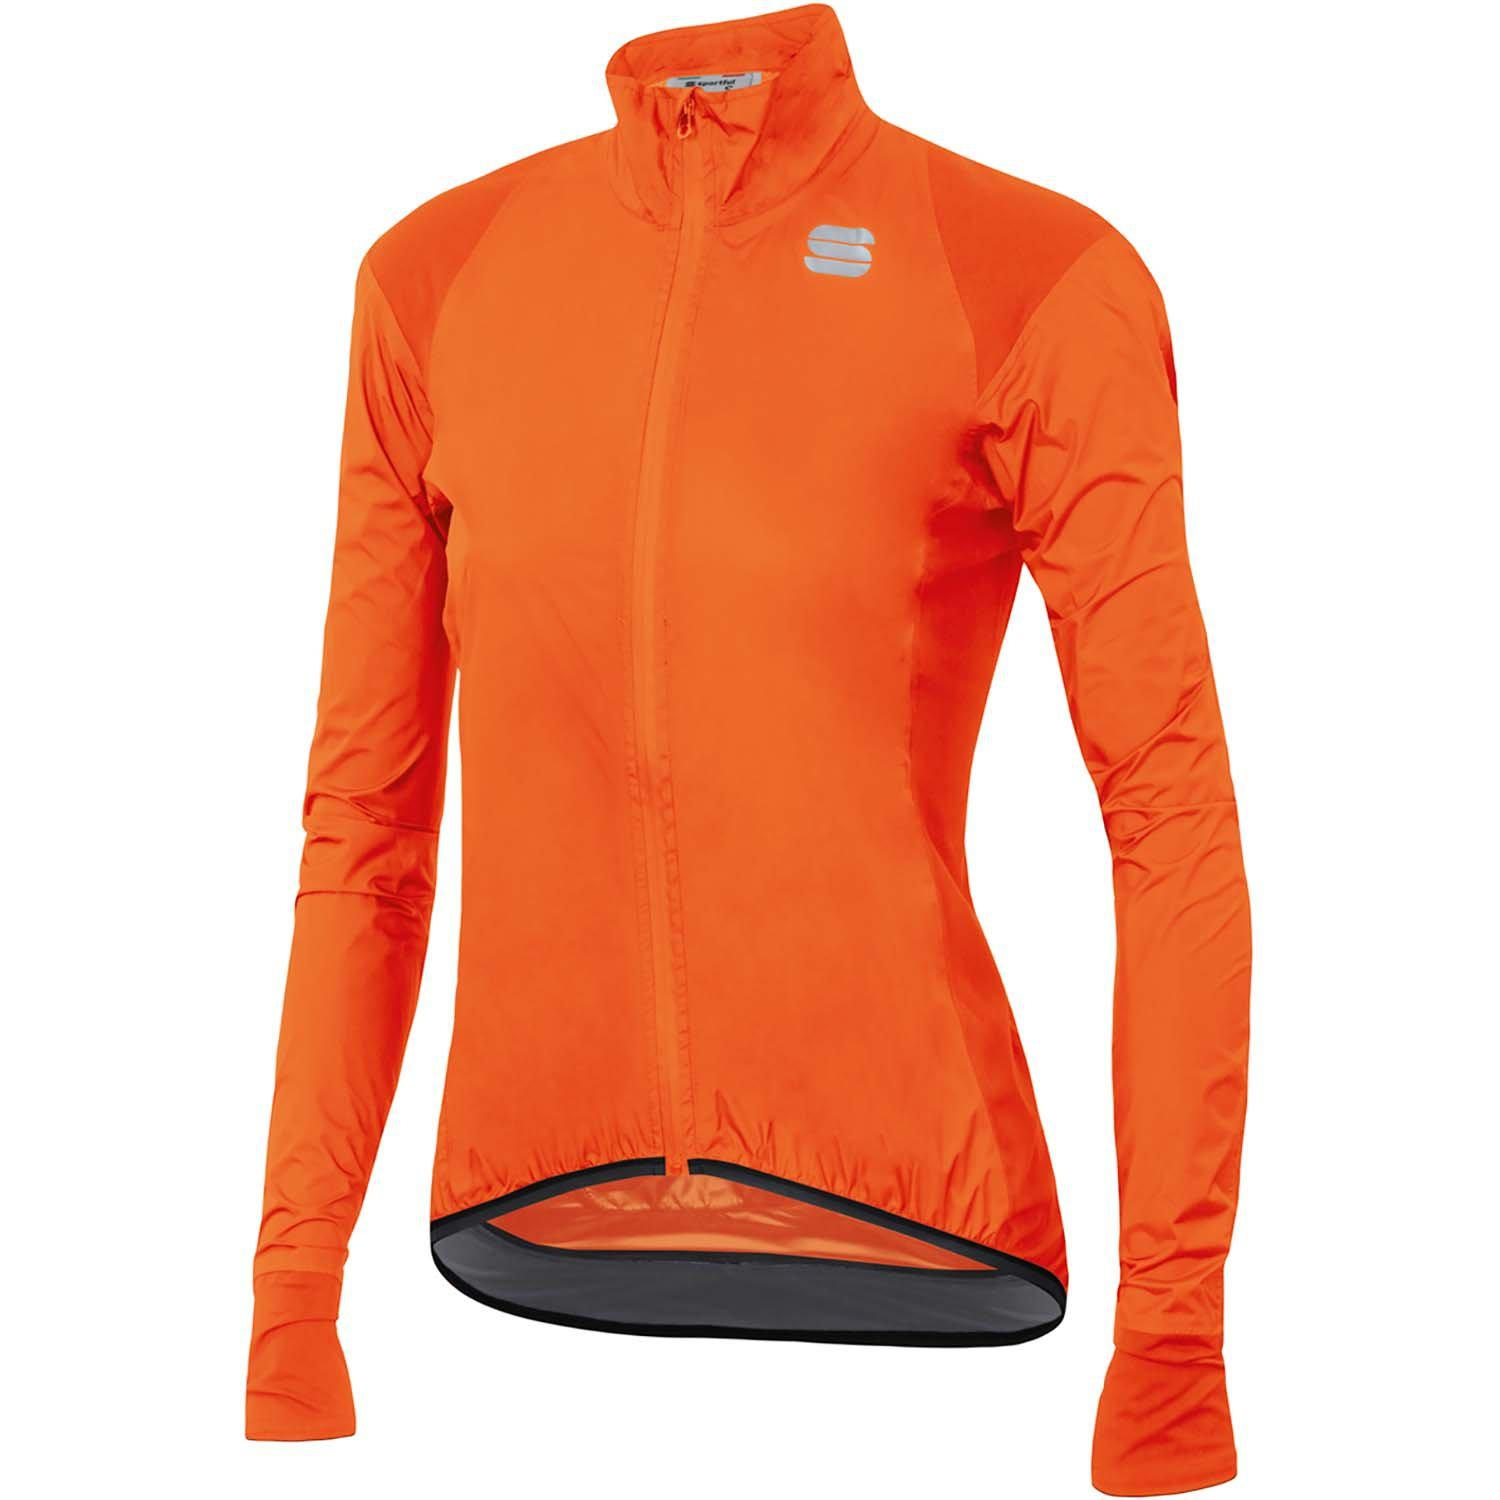 Sportful-Sportful Hot Pack NoRain Women's Jacket-Orange SDR-XS-SF200868501-saddleback-elite-performance-cycling